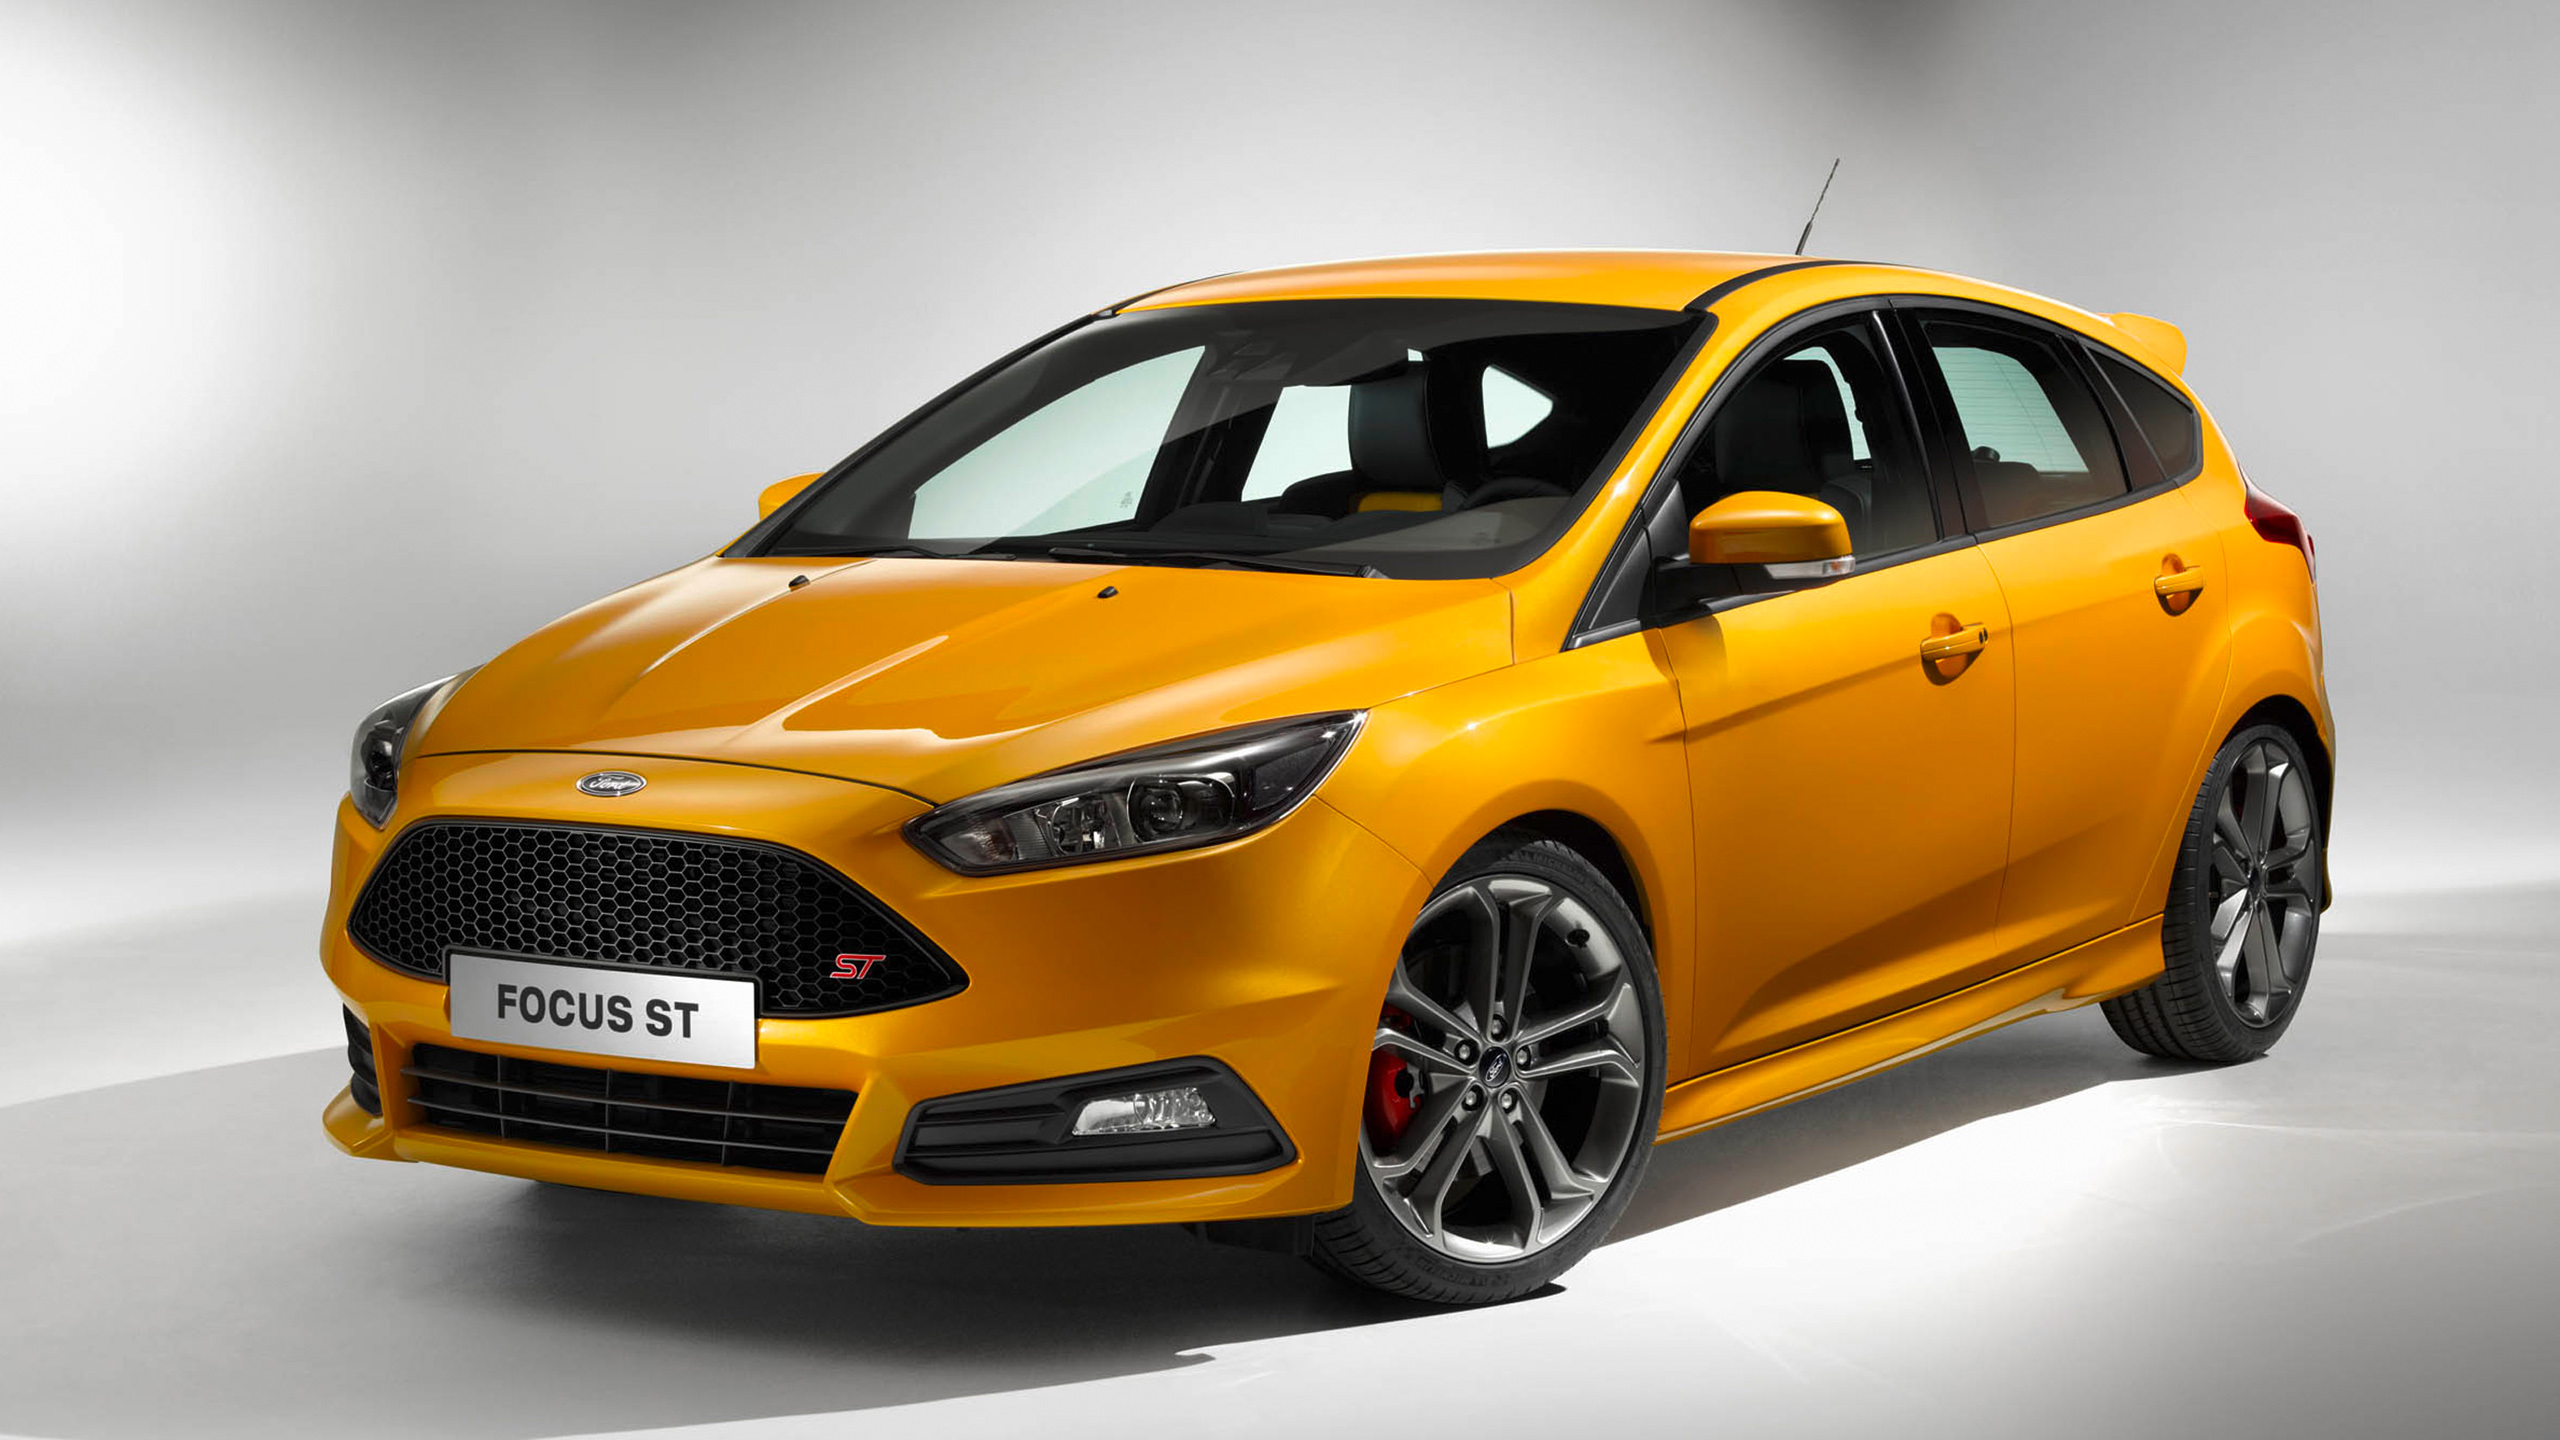 2015 Ford Focus ST Wallpaper HD Car Wallpapers 2560x1440